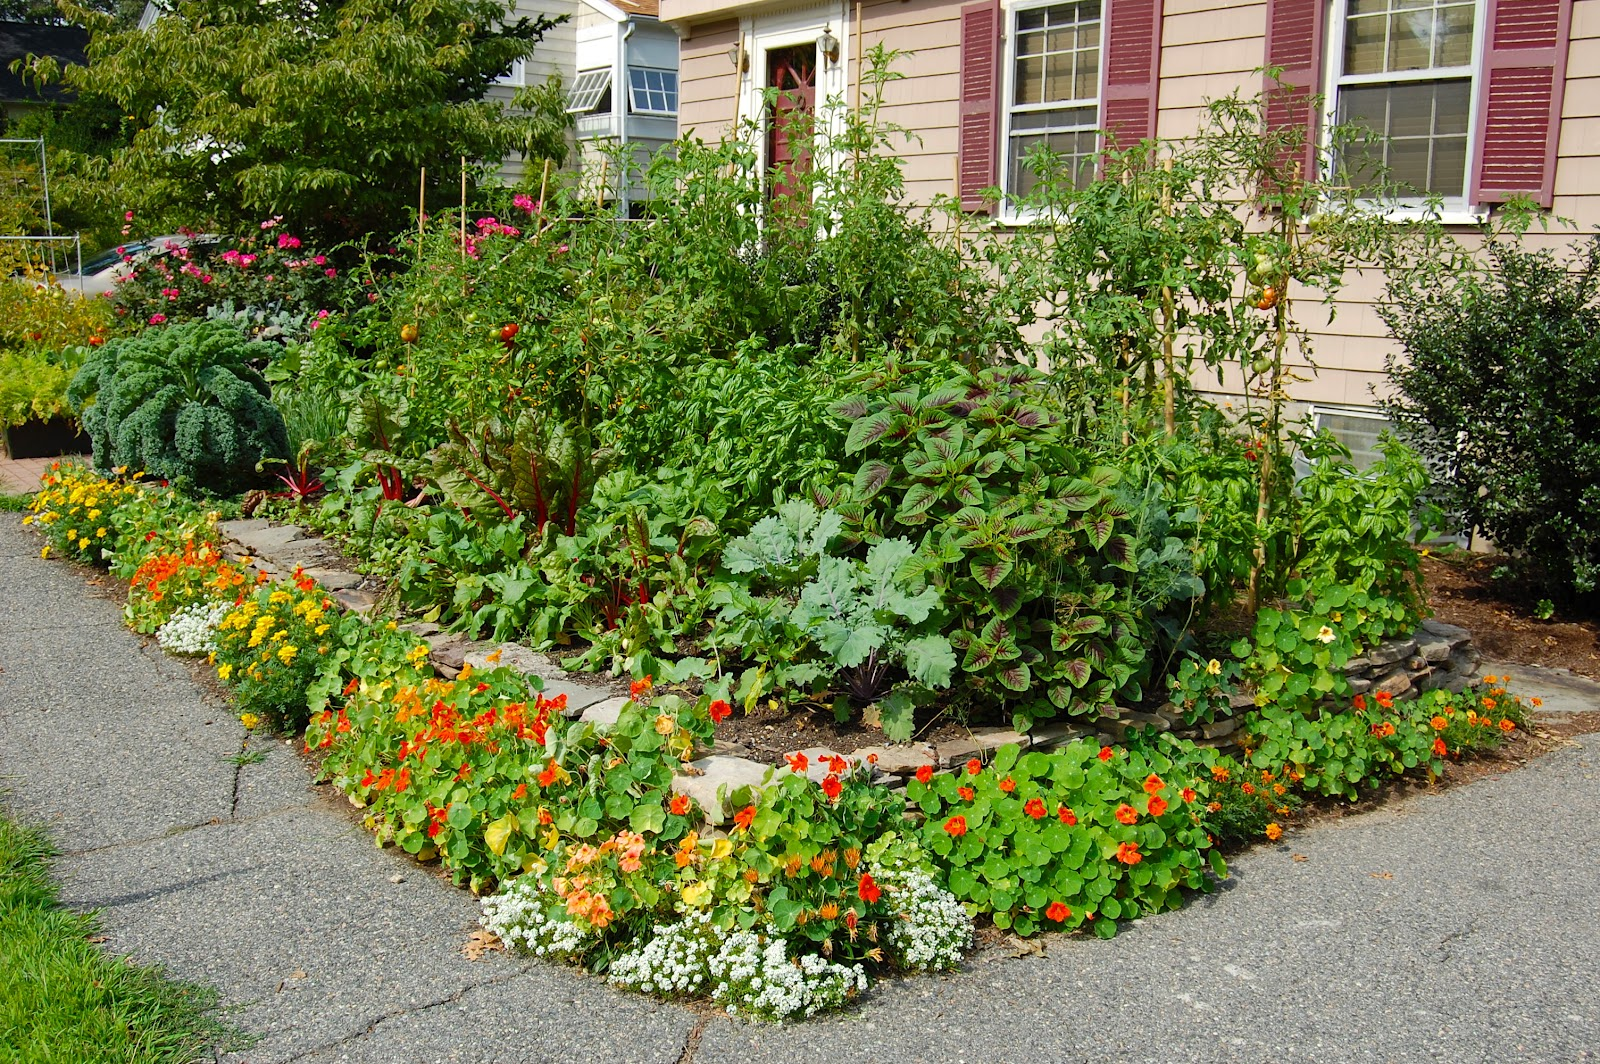 Landscaping landscaping ideas for front yard edible gardens for Garden designs landscaping